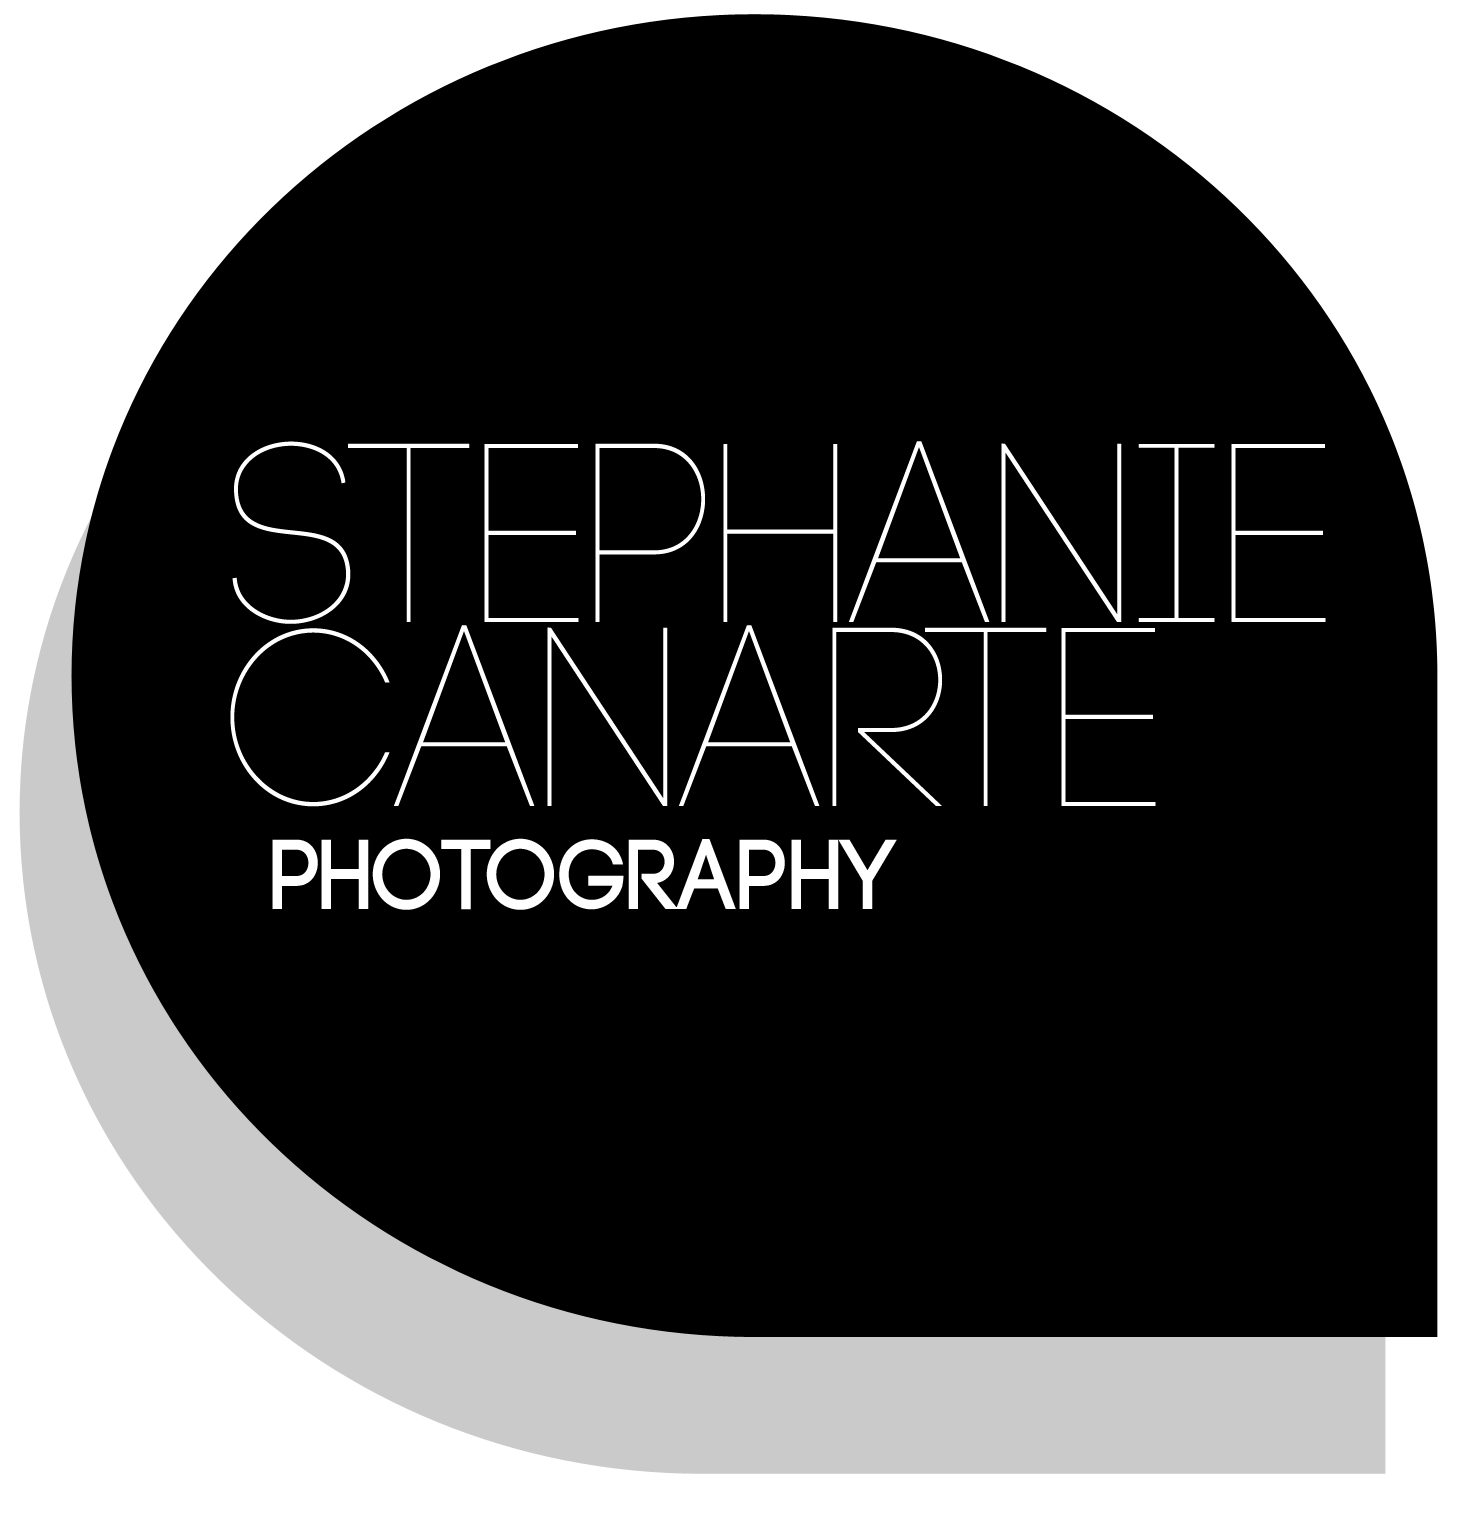 Steph Canarte Photography